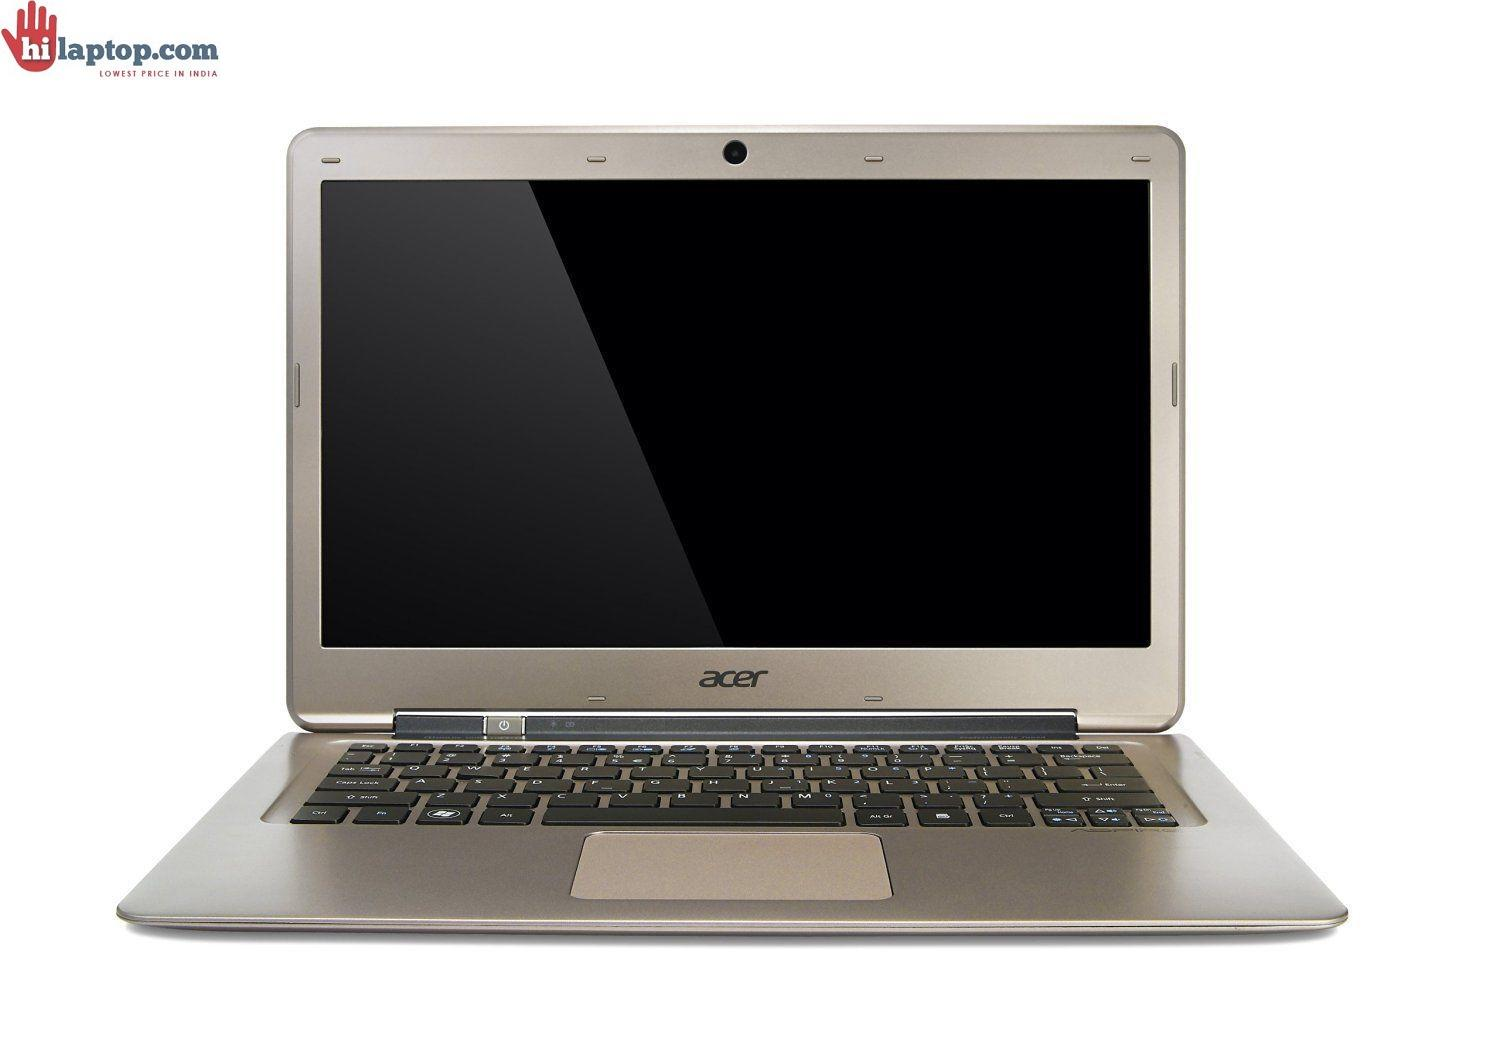 ACER ASPIRE S7-392 INSTANTGO INTEL GRAPHICS WINDOWS VISTA DRIVER DOWNLOAD